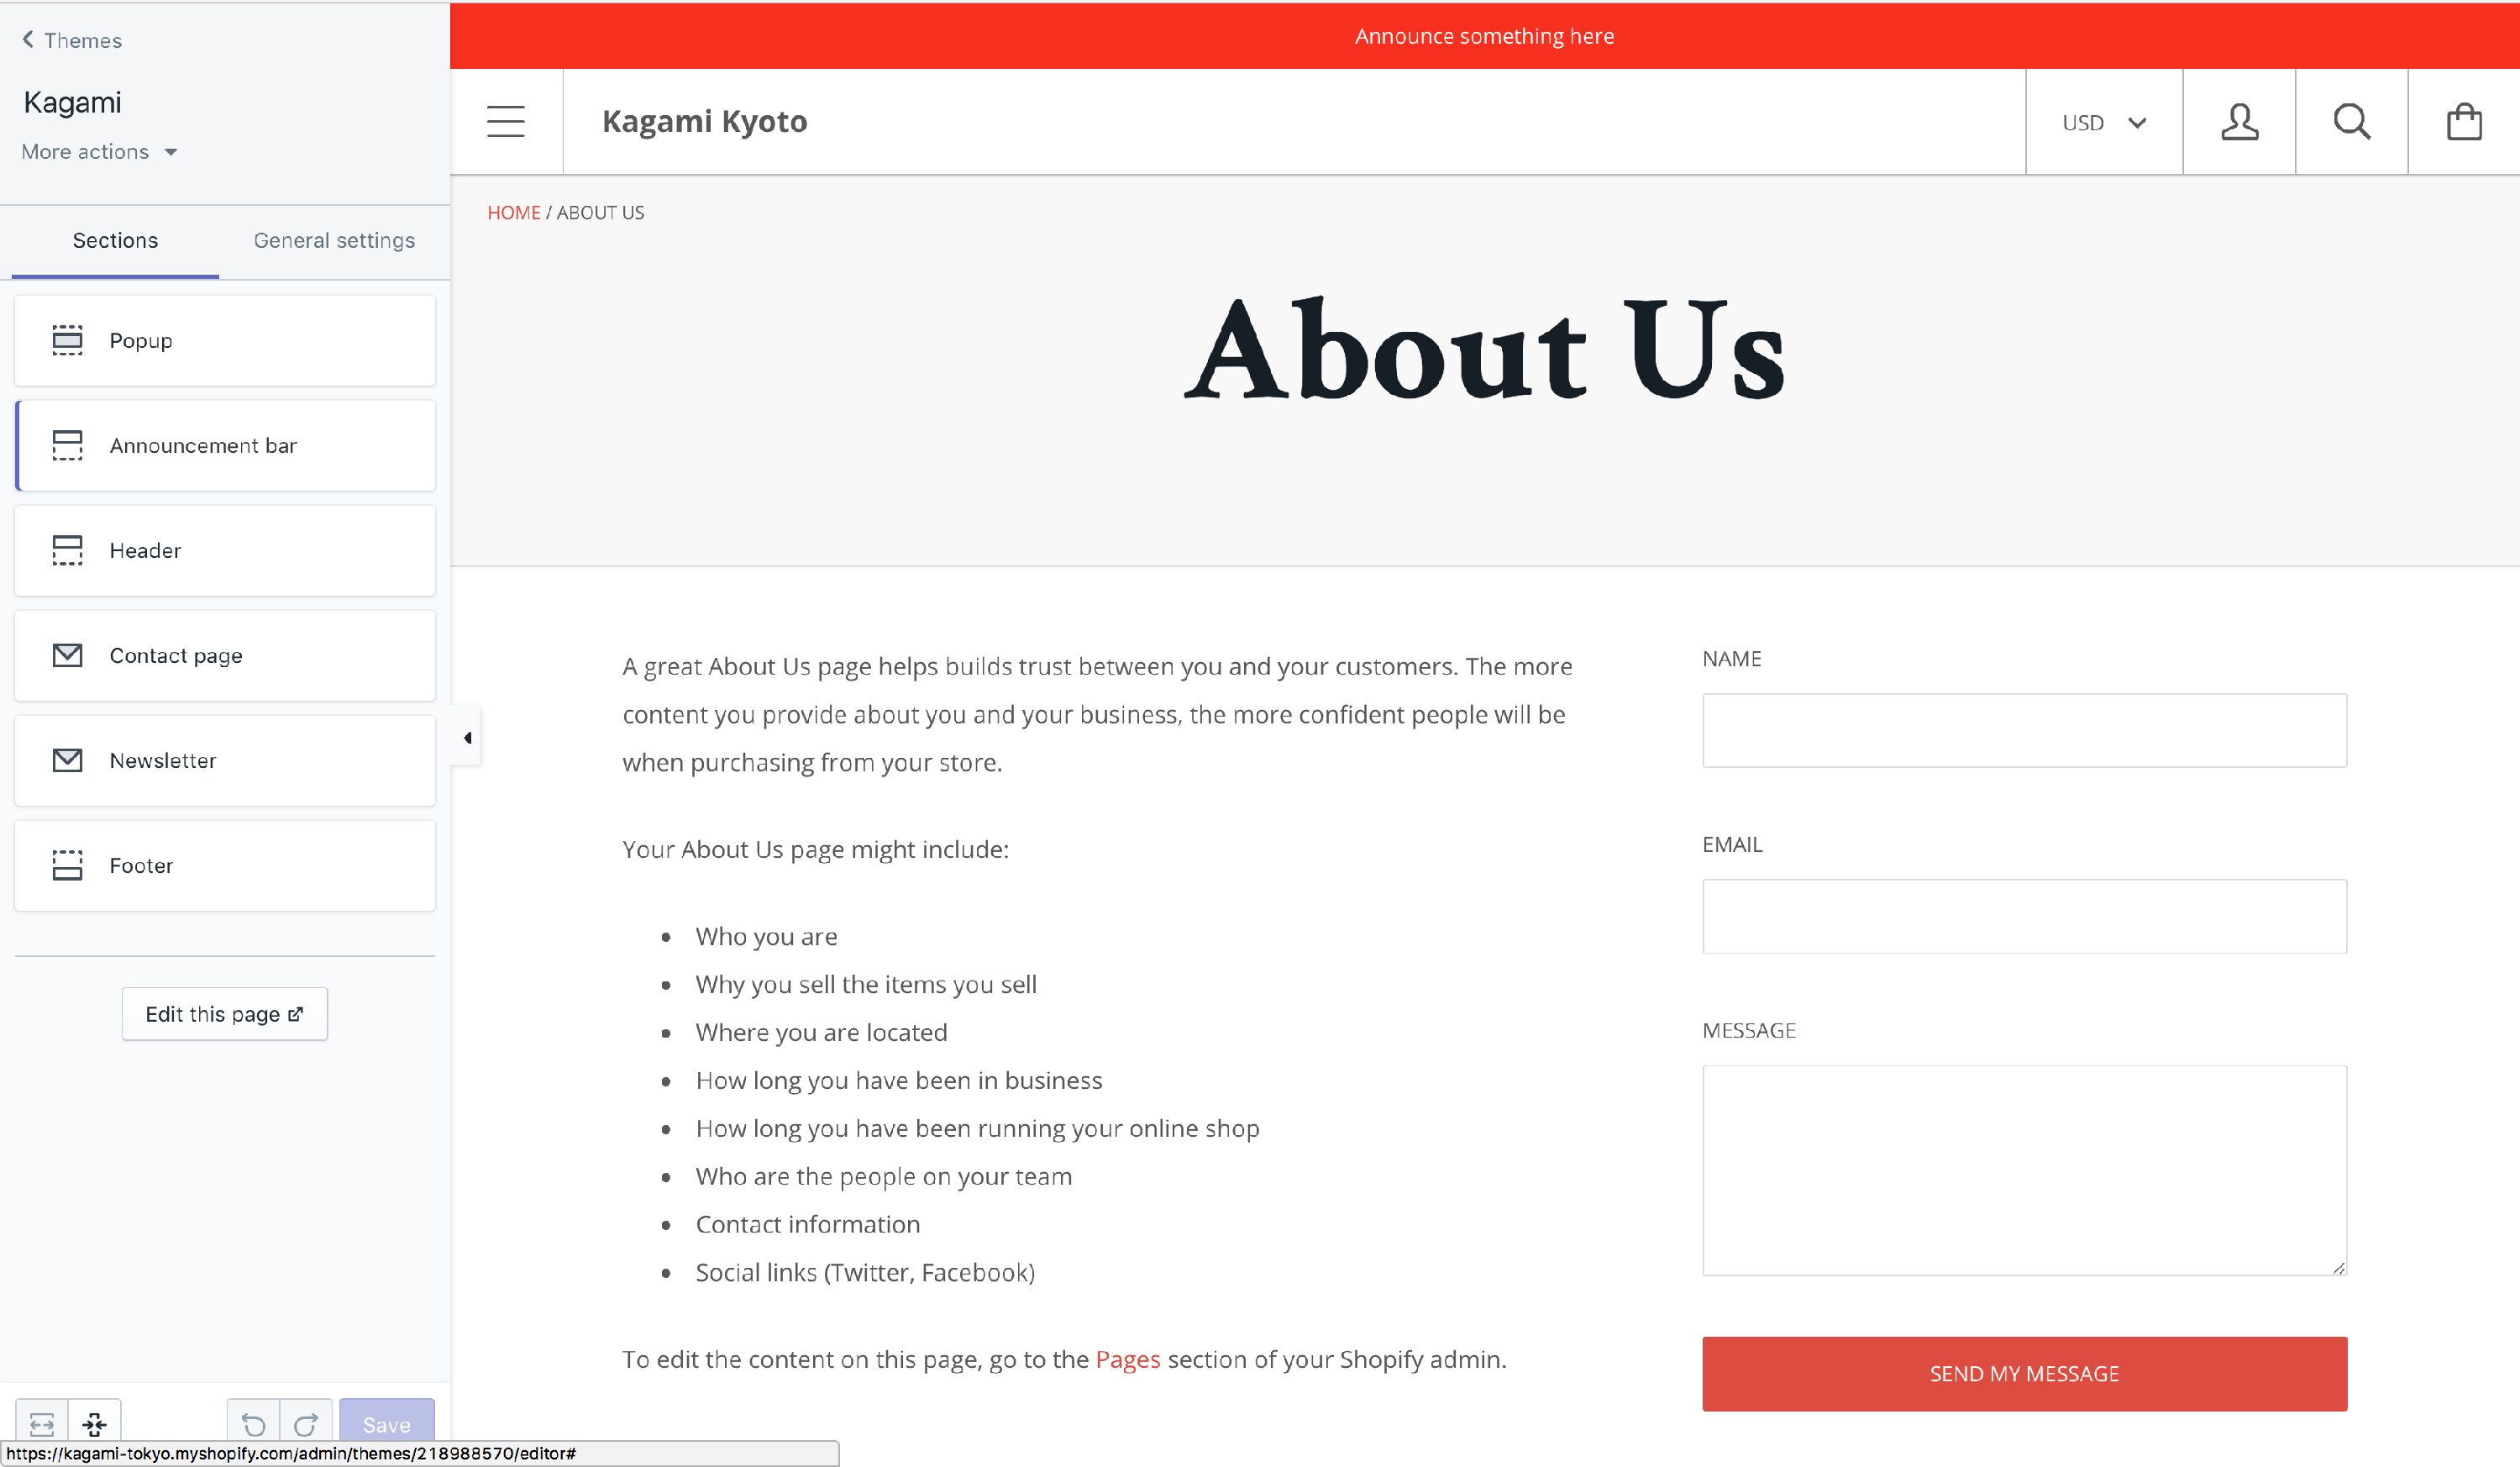 CONTACT PAGE Adding A Map Shopify Themes Knowledge Base - Shopify template editor